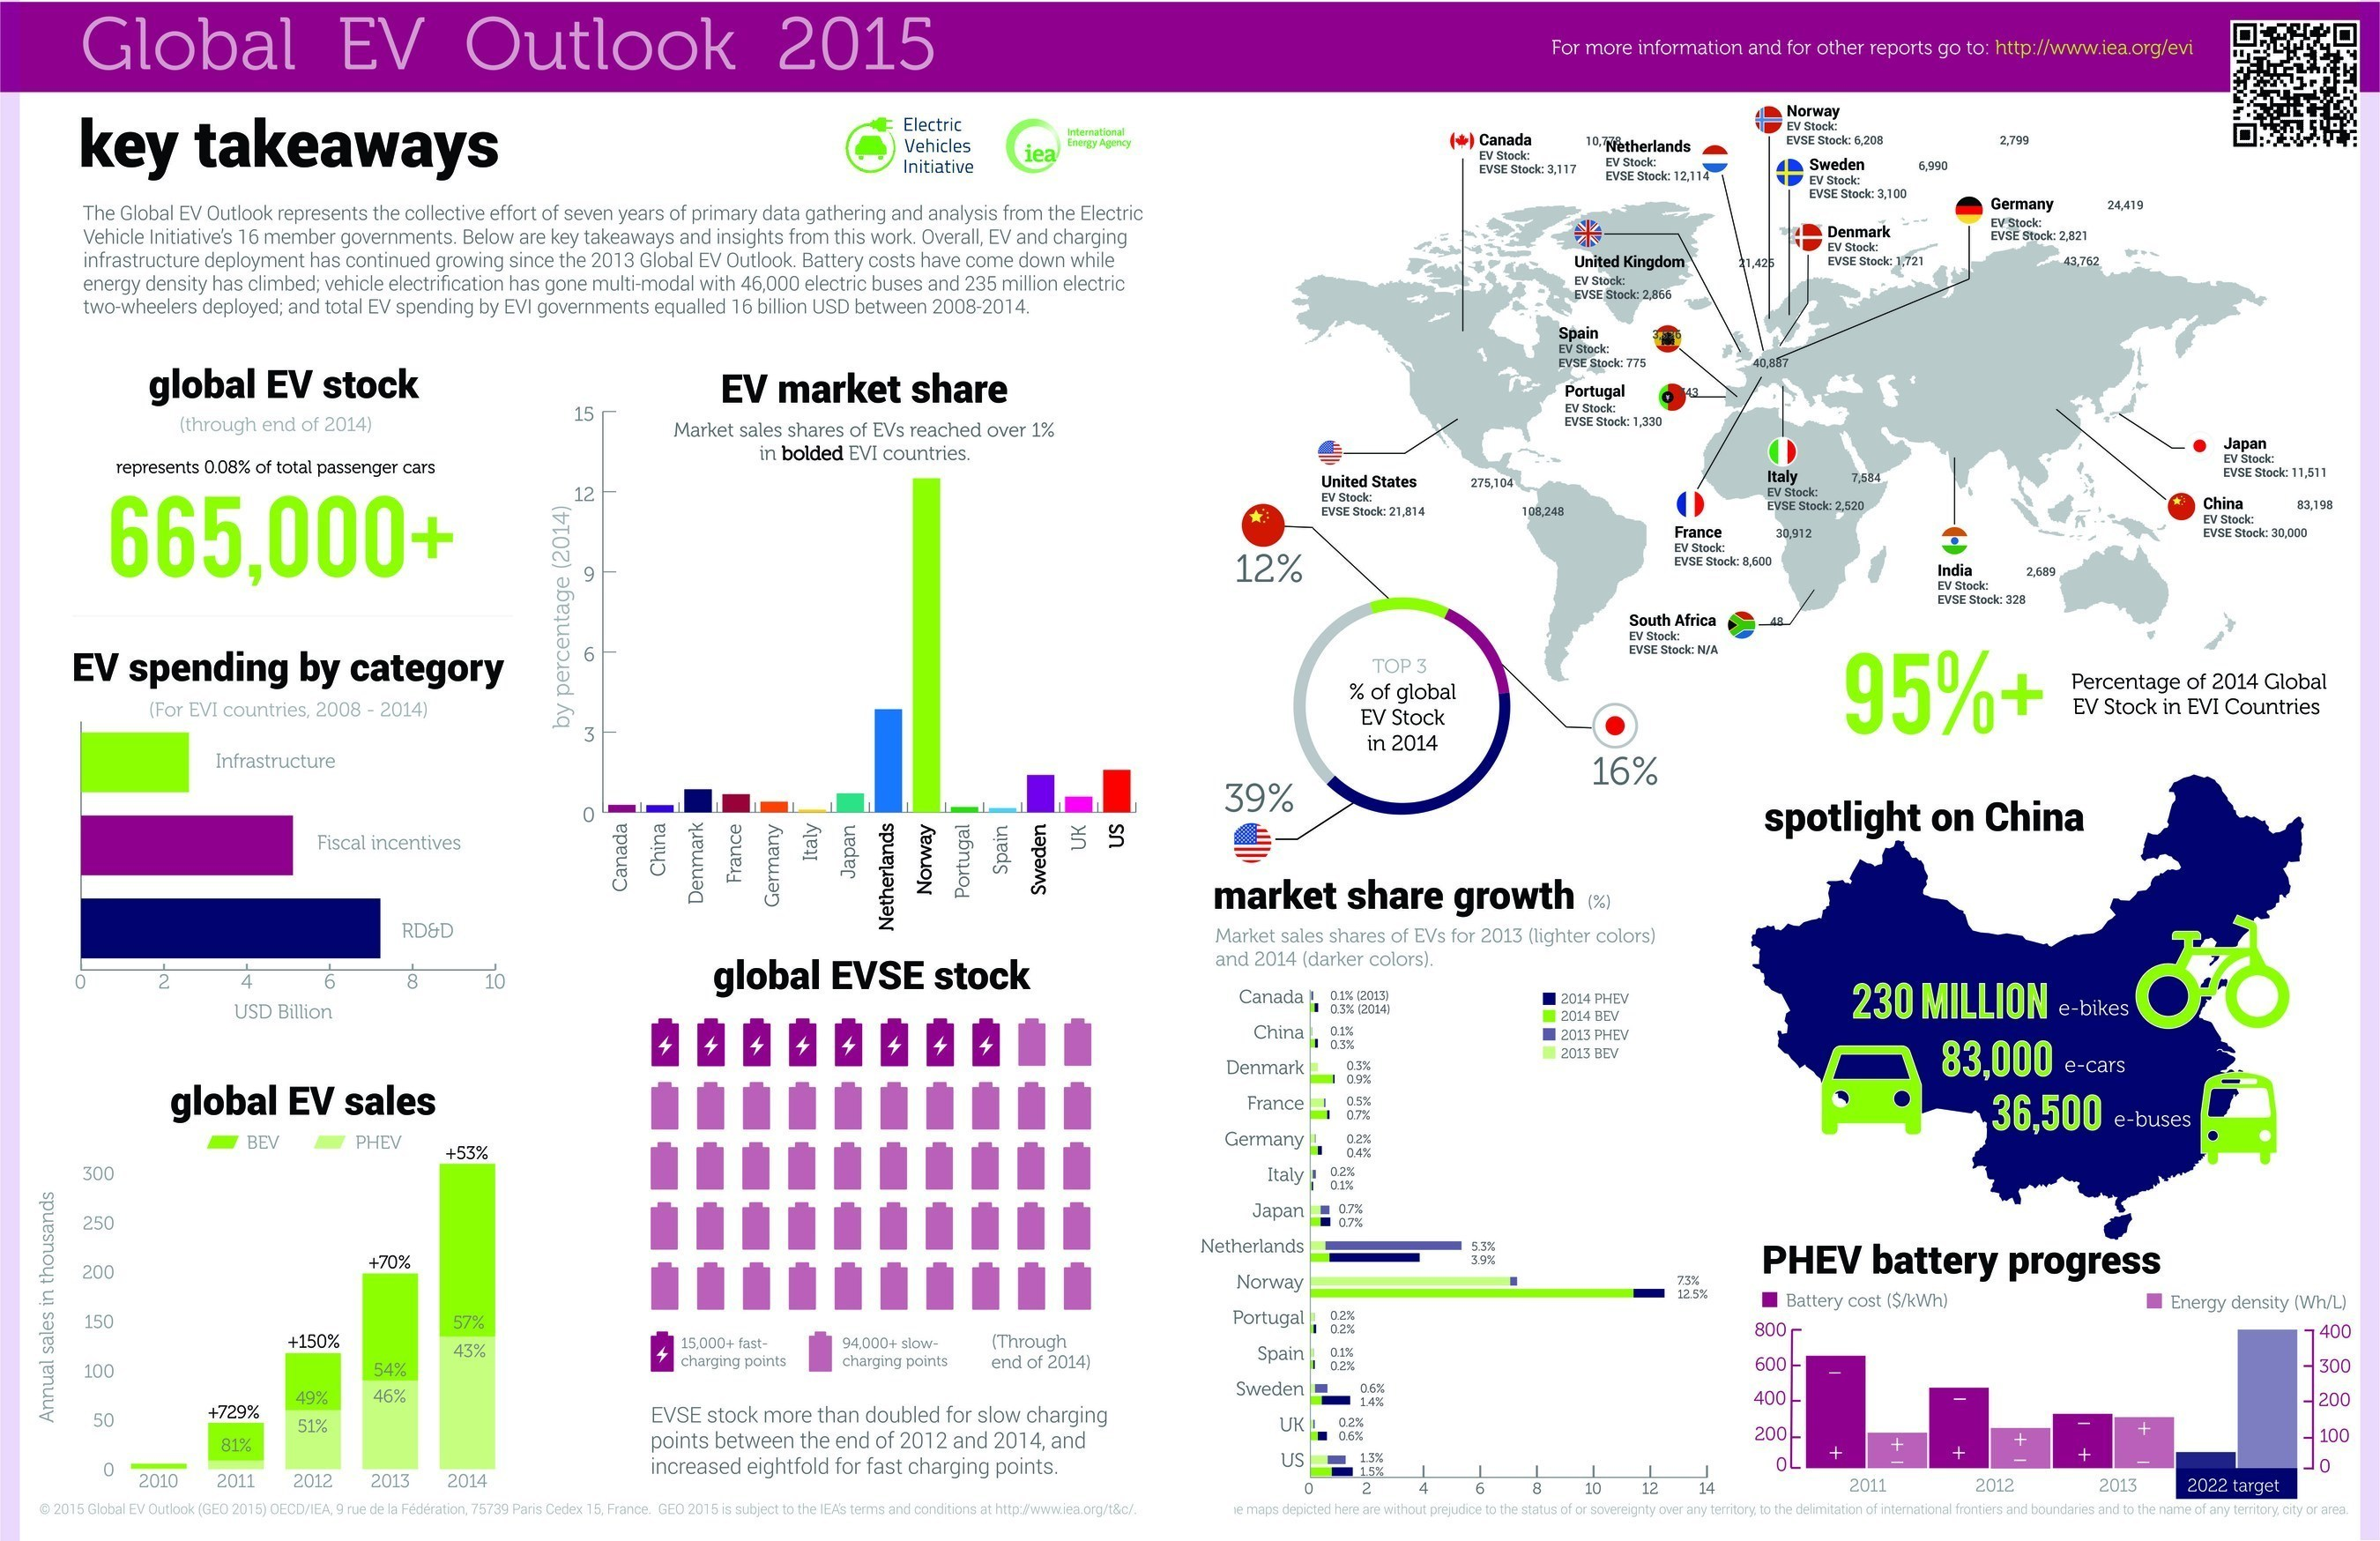 EVI Releases the Global EV Outlook 2015